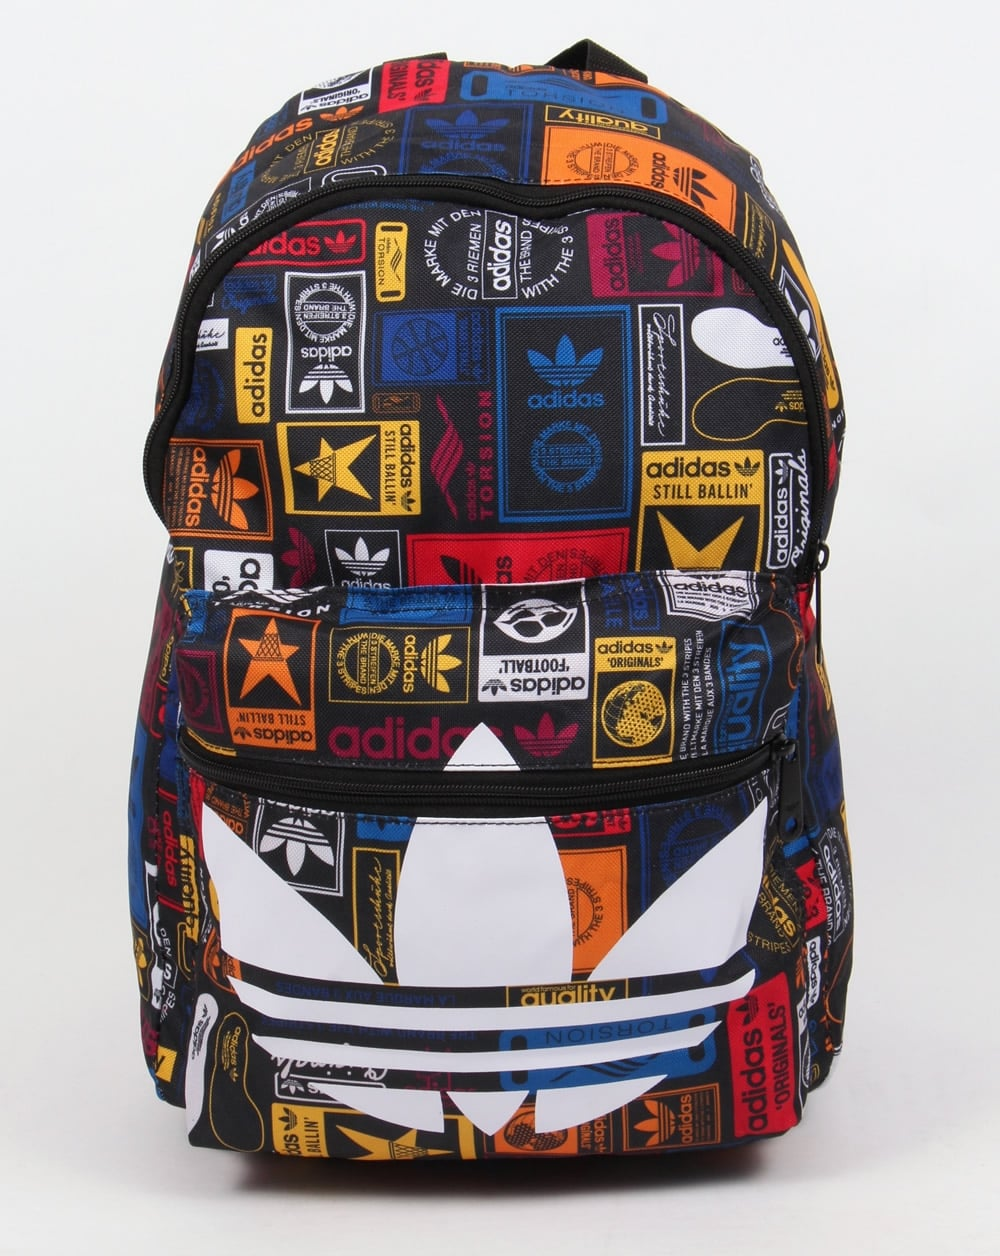 37e2496a4f adidas Originals Adidas Originals Label Backpack Multi